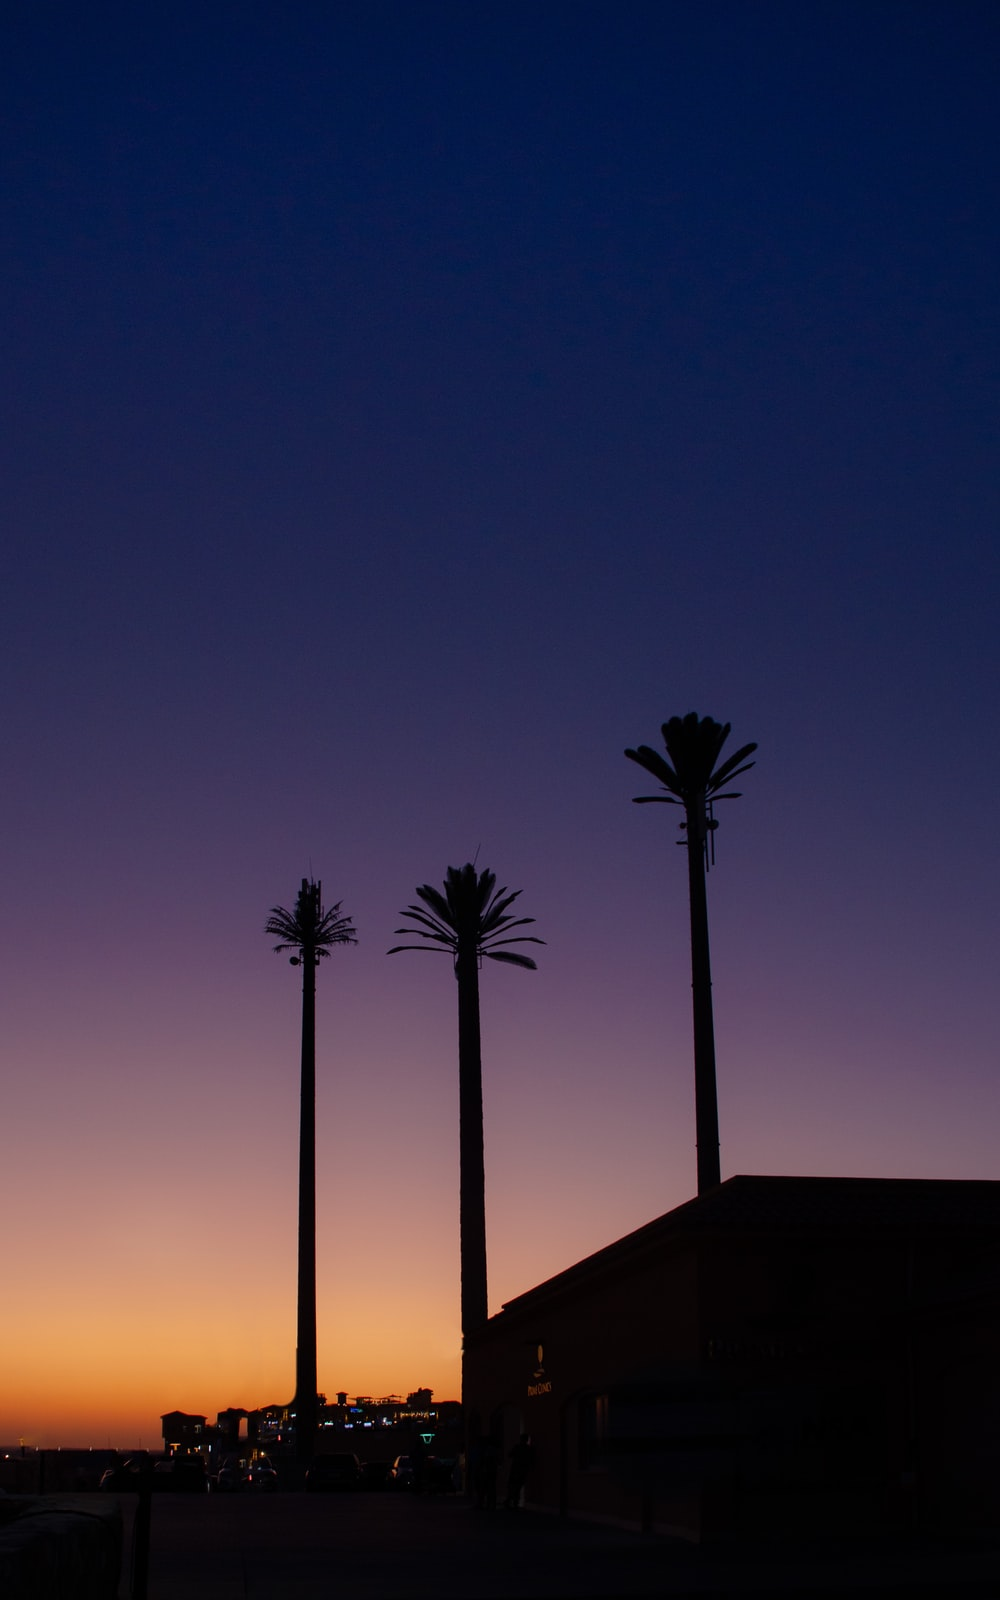 silhouette of tall trees